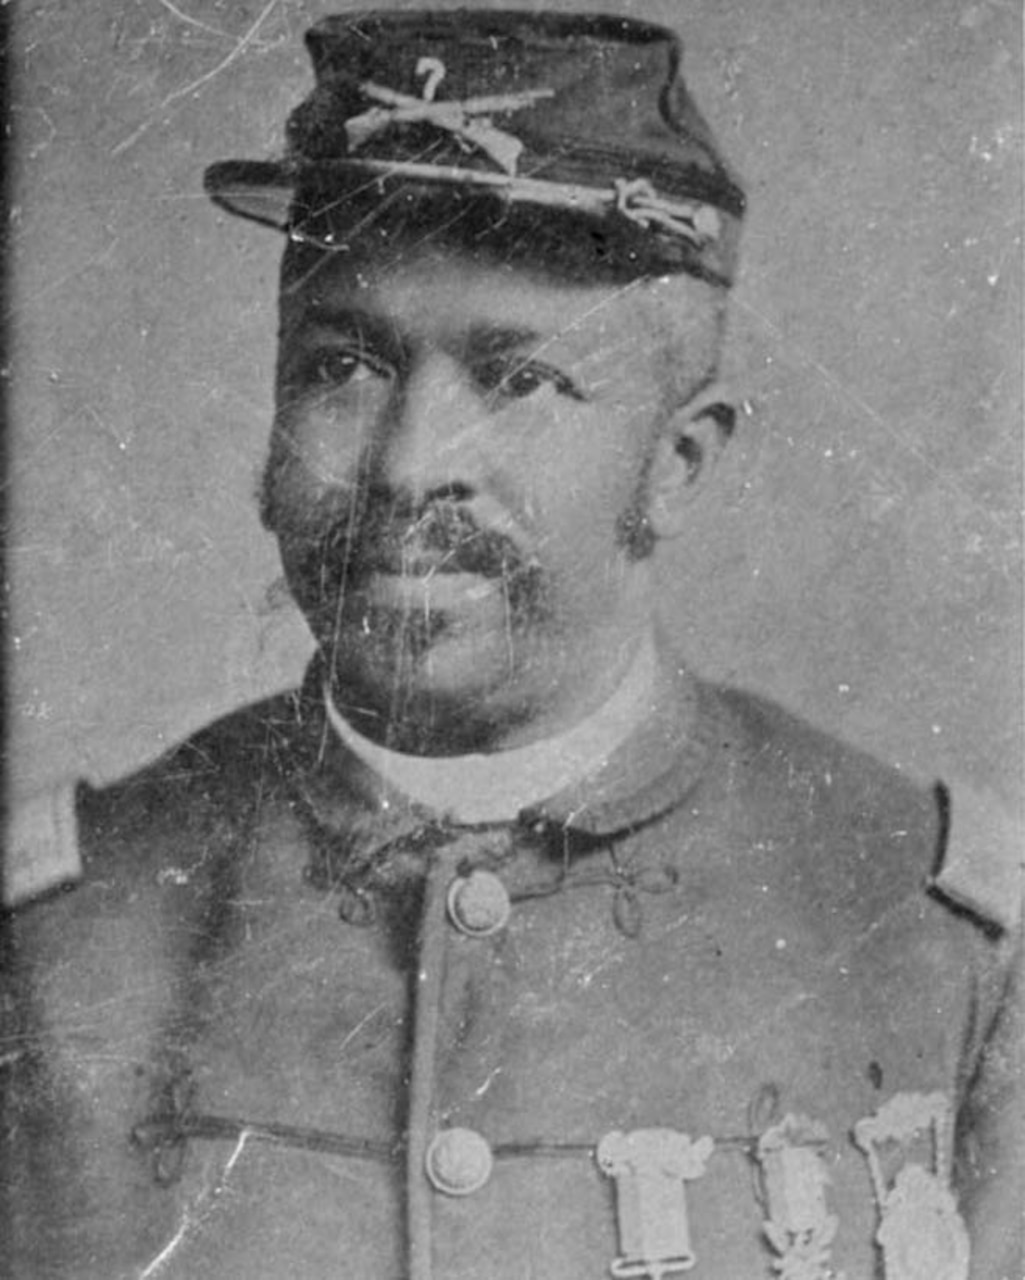 A black Civil War soldier wears his cap and uniform with three medals pinned to his dress shirt.